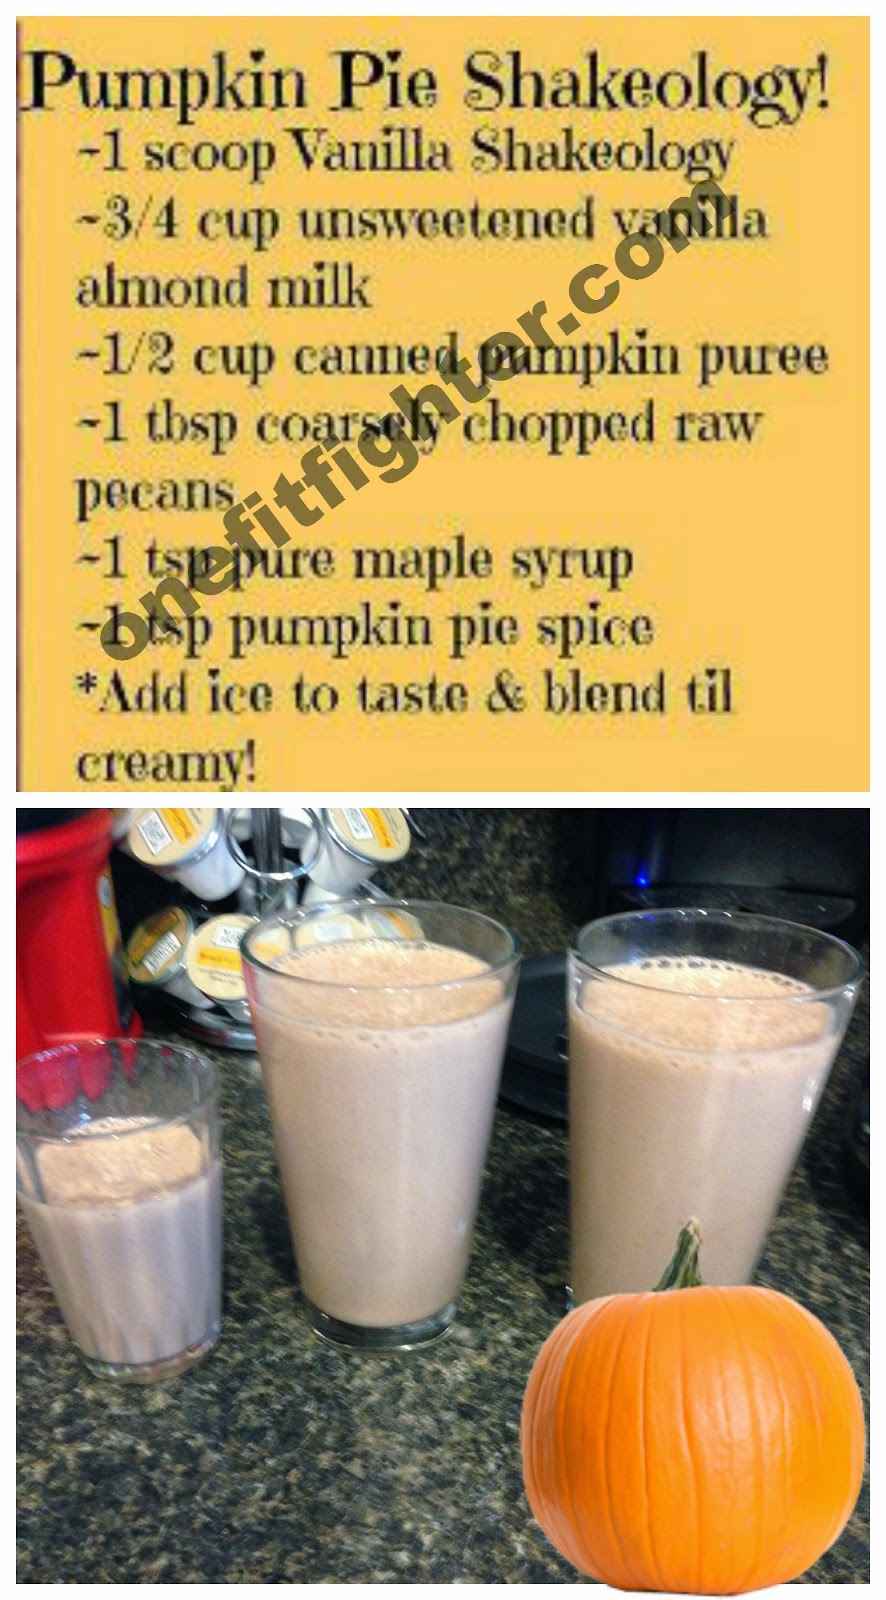 pumpkin pie shakeology, shakeology pumpkine recipe